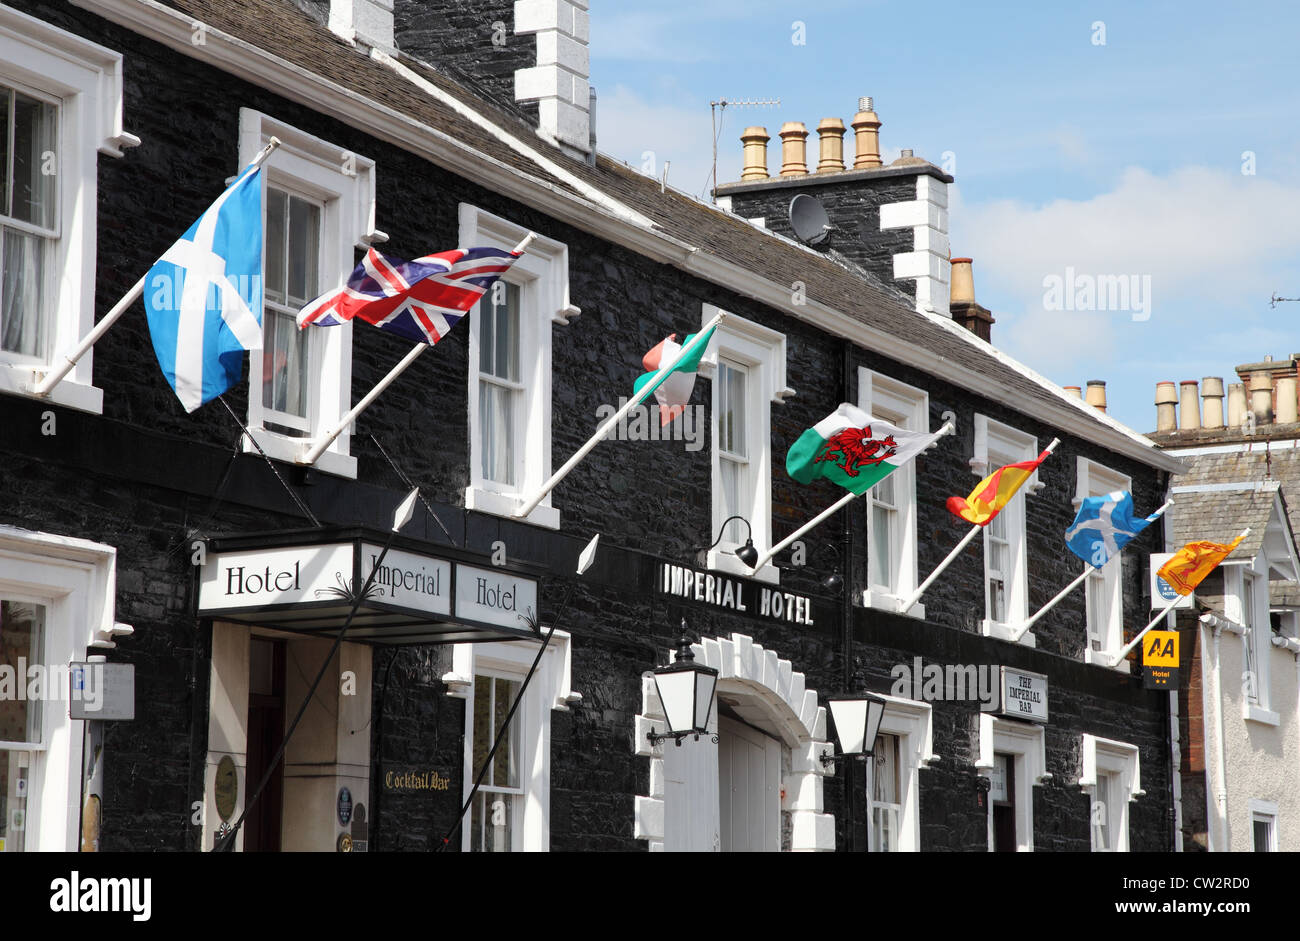 British flags flying outside the Imperial Hotel, Castle Douglas south west Scotland UK - Stock Image